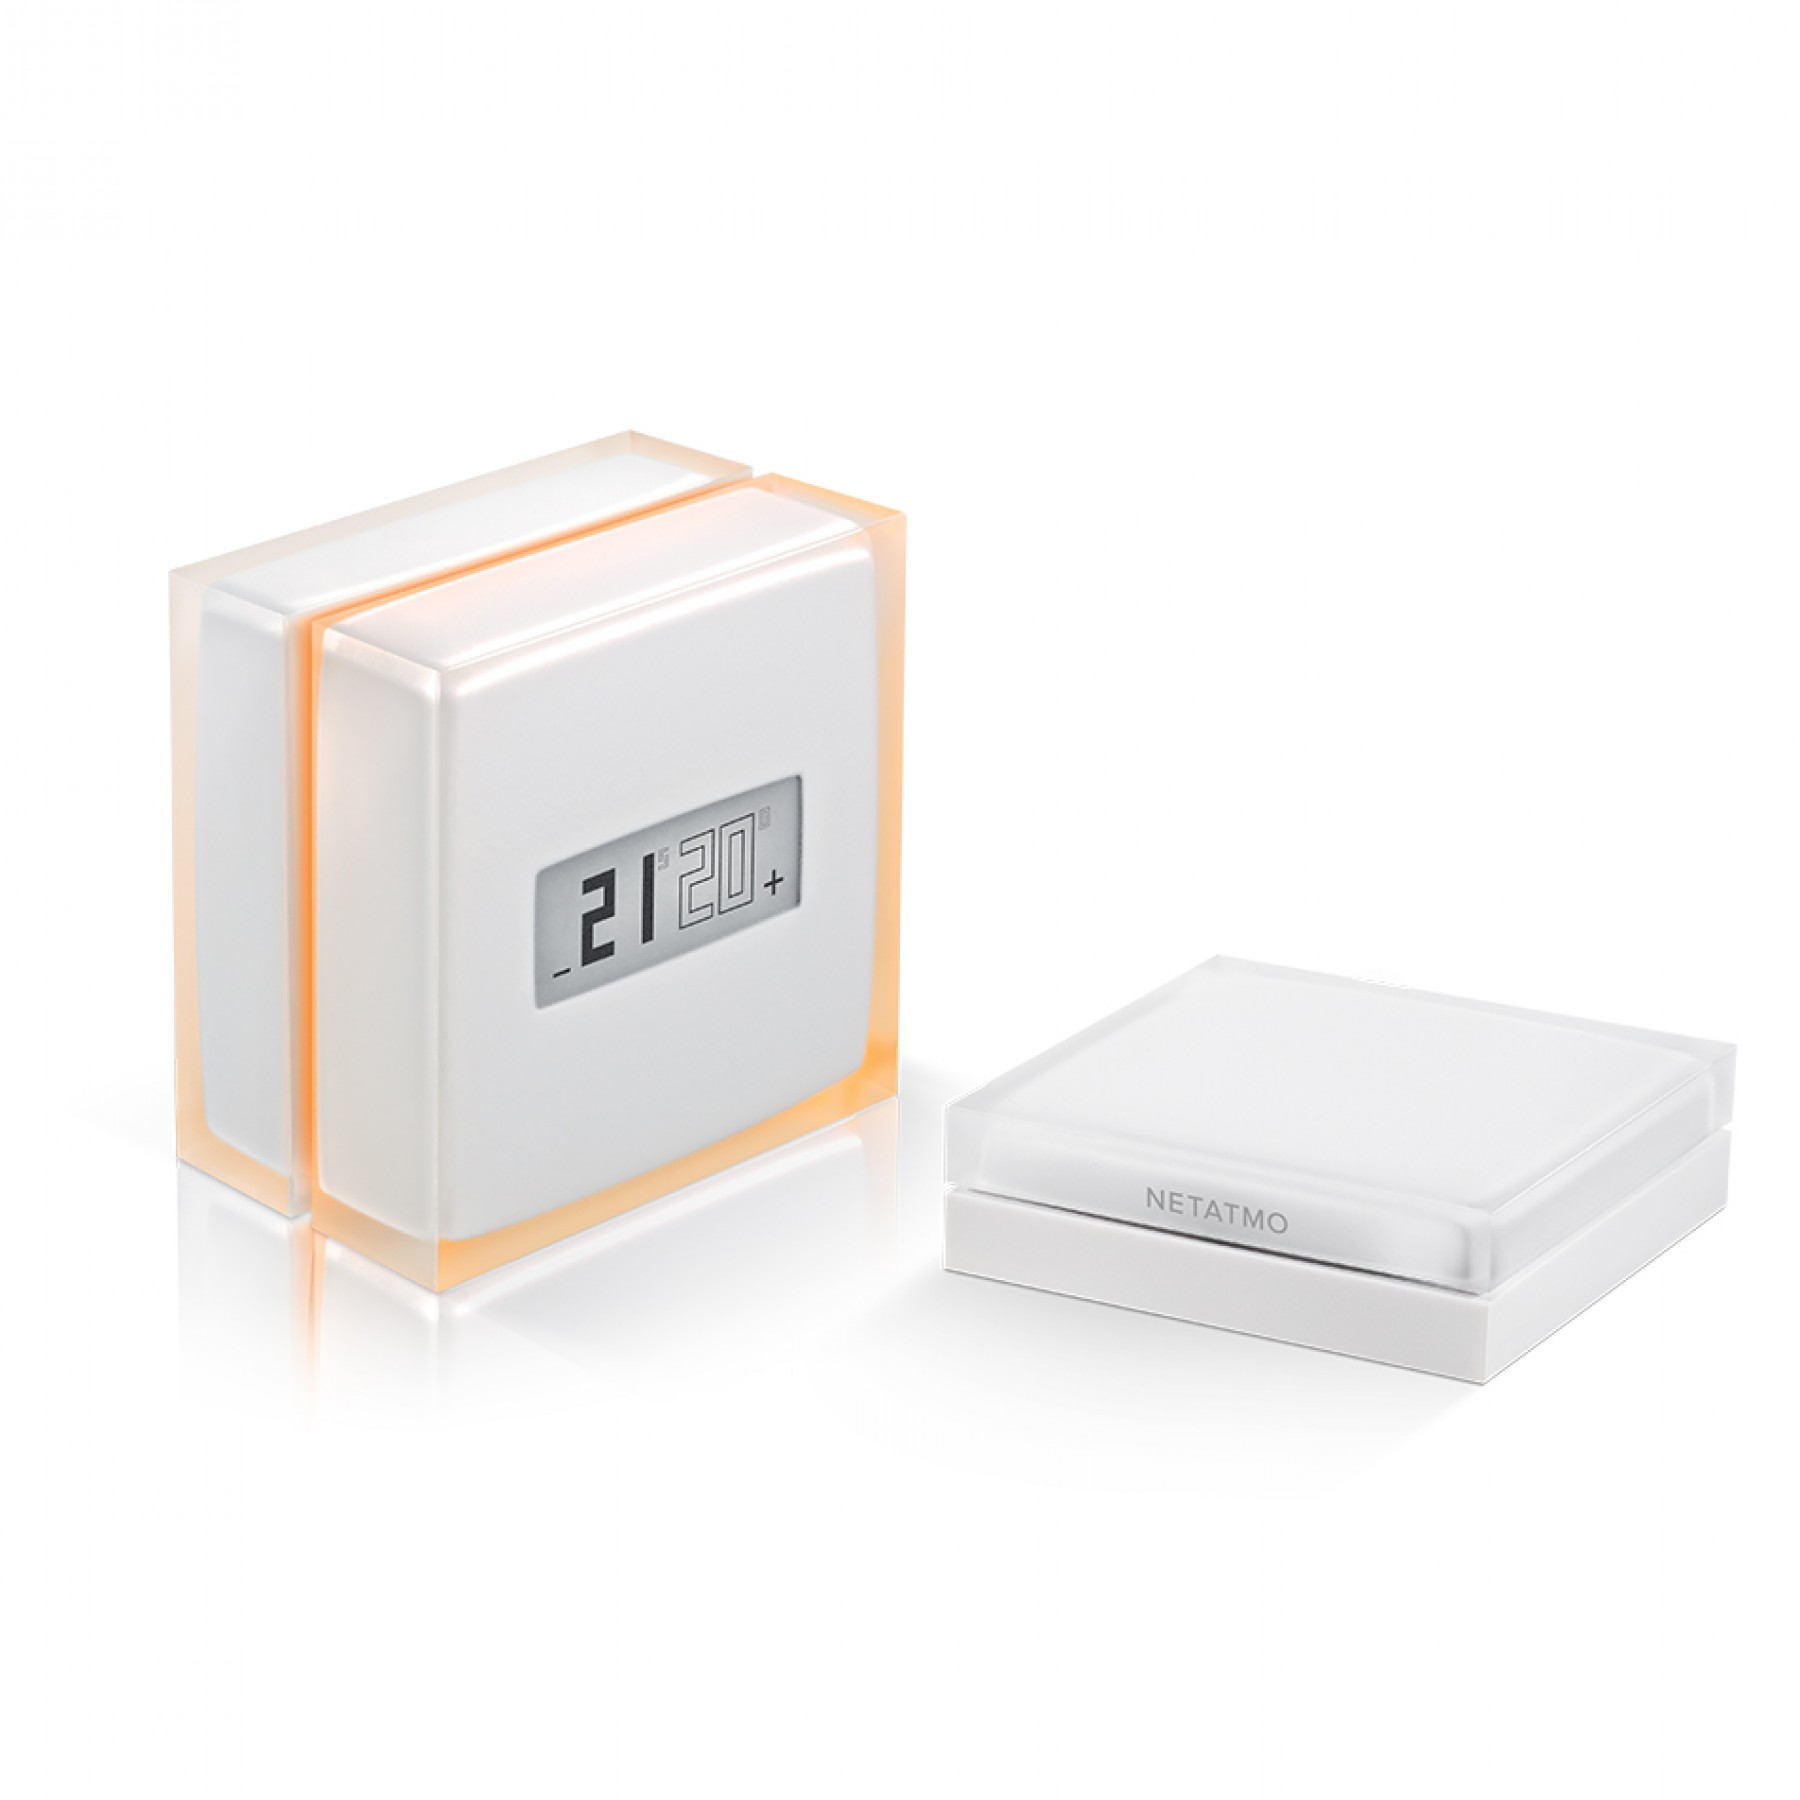 netatmo thermostat translucent white 0 in distributor wholesale stock for resellers to sell. Black Bedroom Furniture Sets. Home Design Ideas